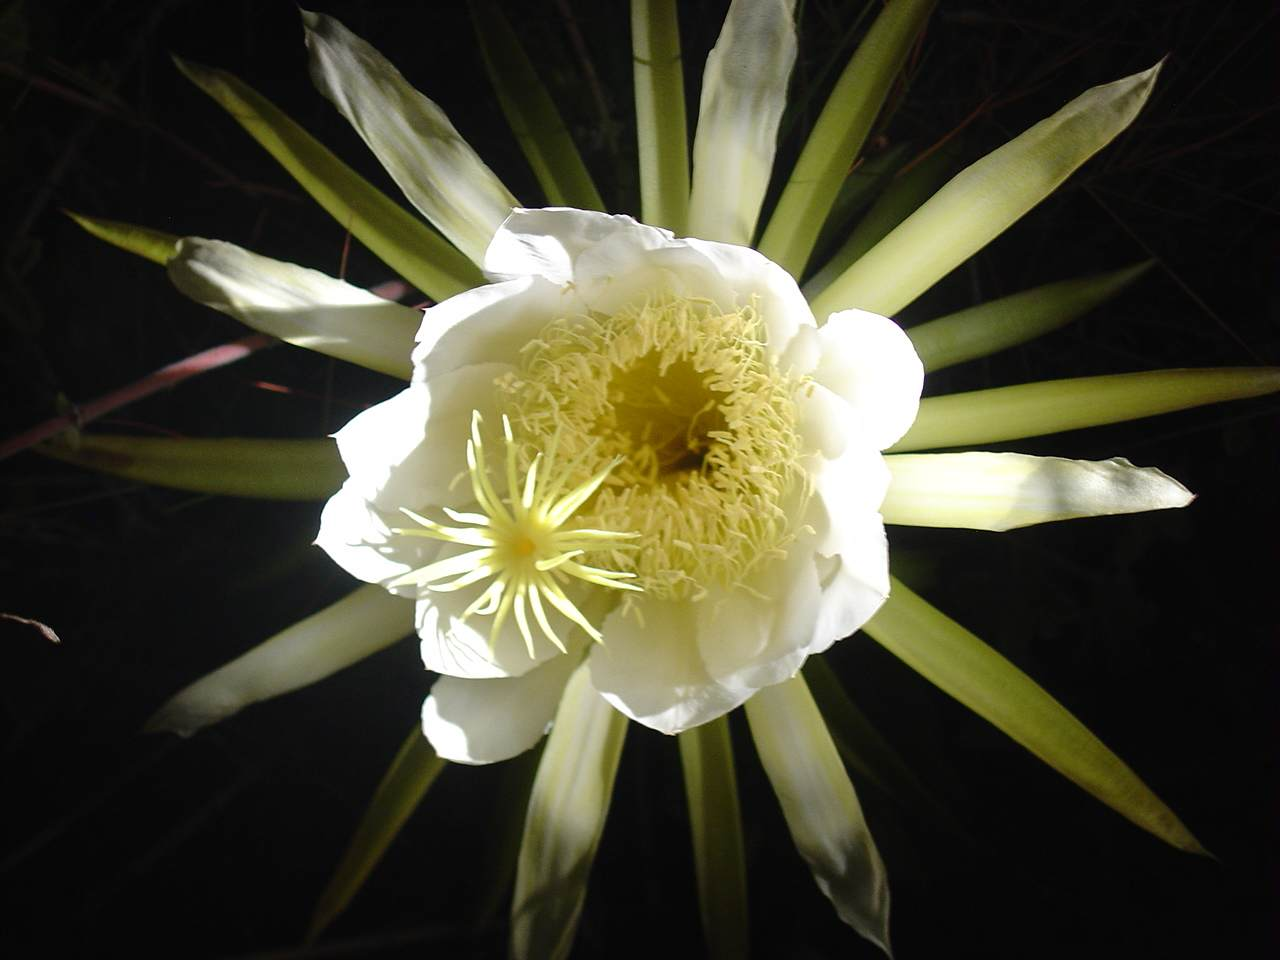 Working title night blooming cereus for A flower that only blooms at night